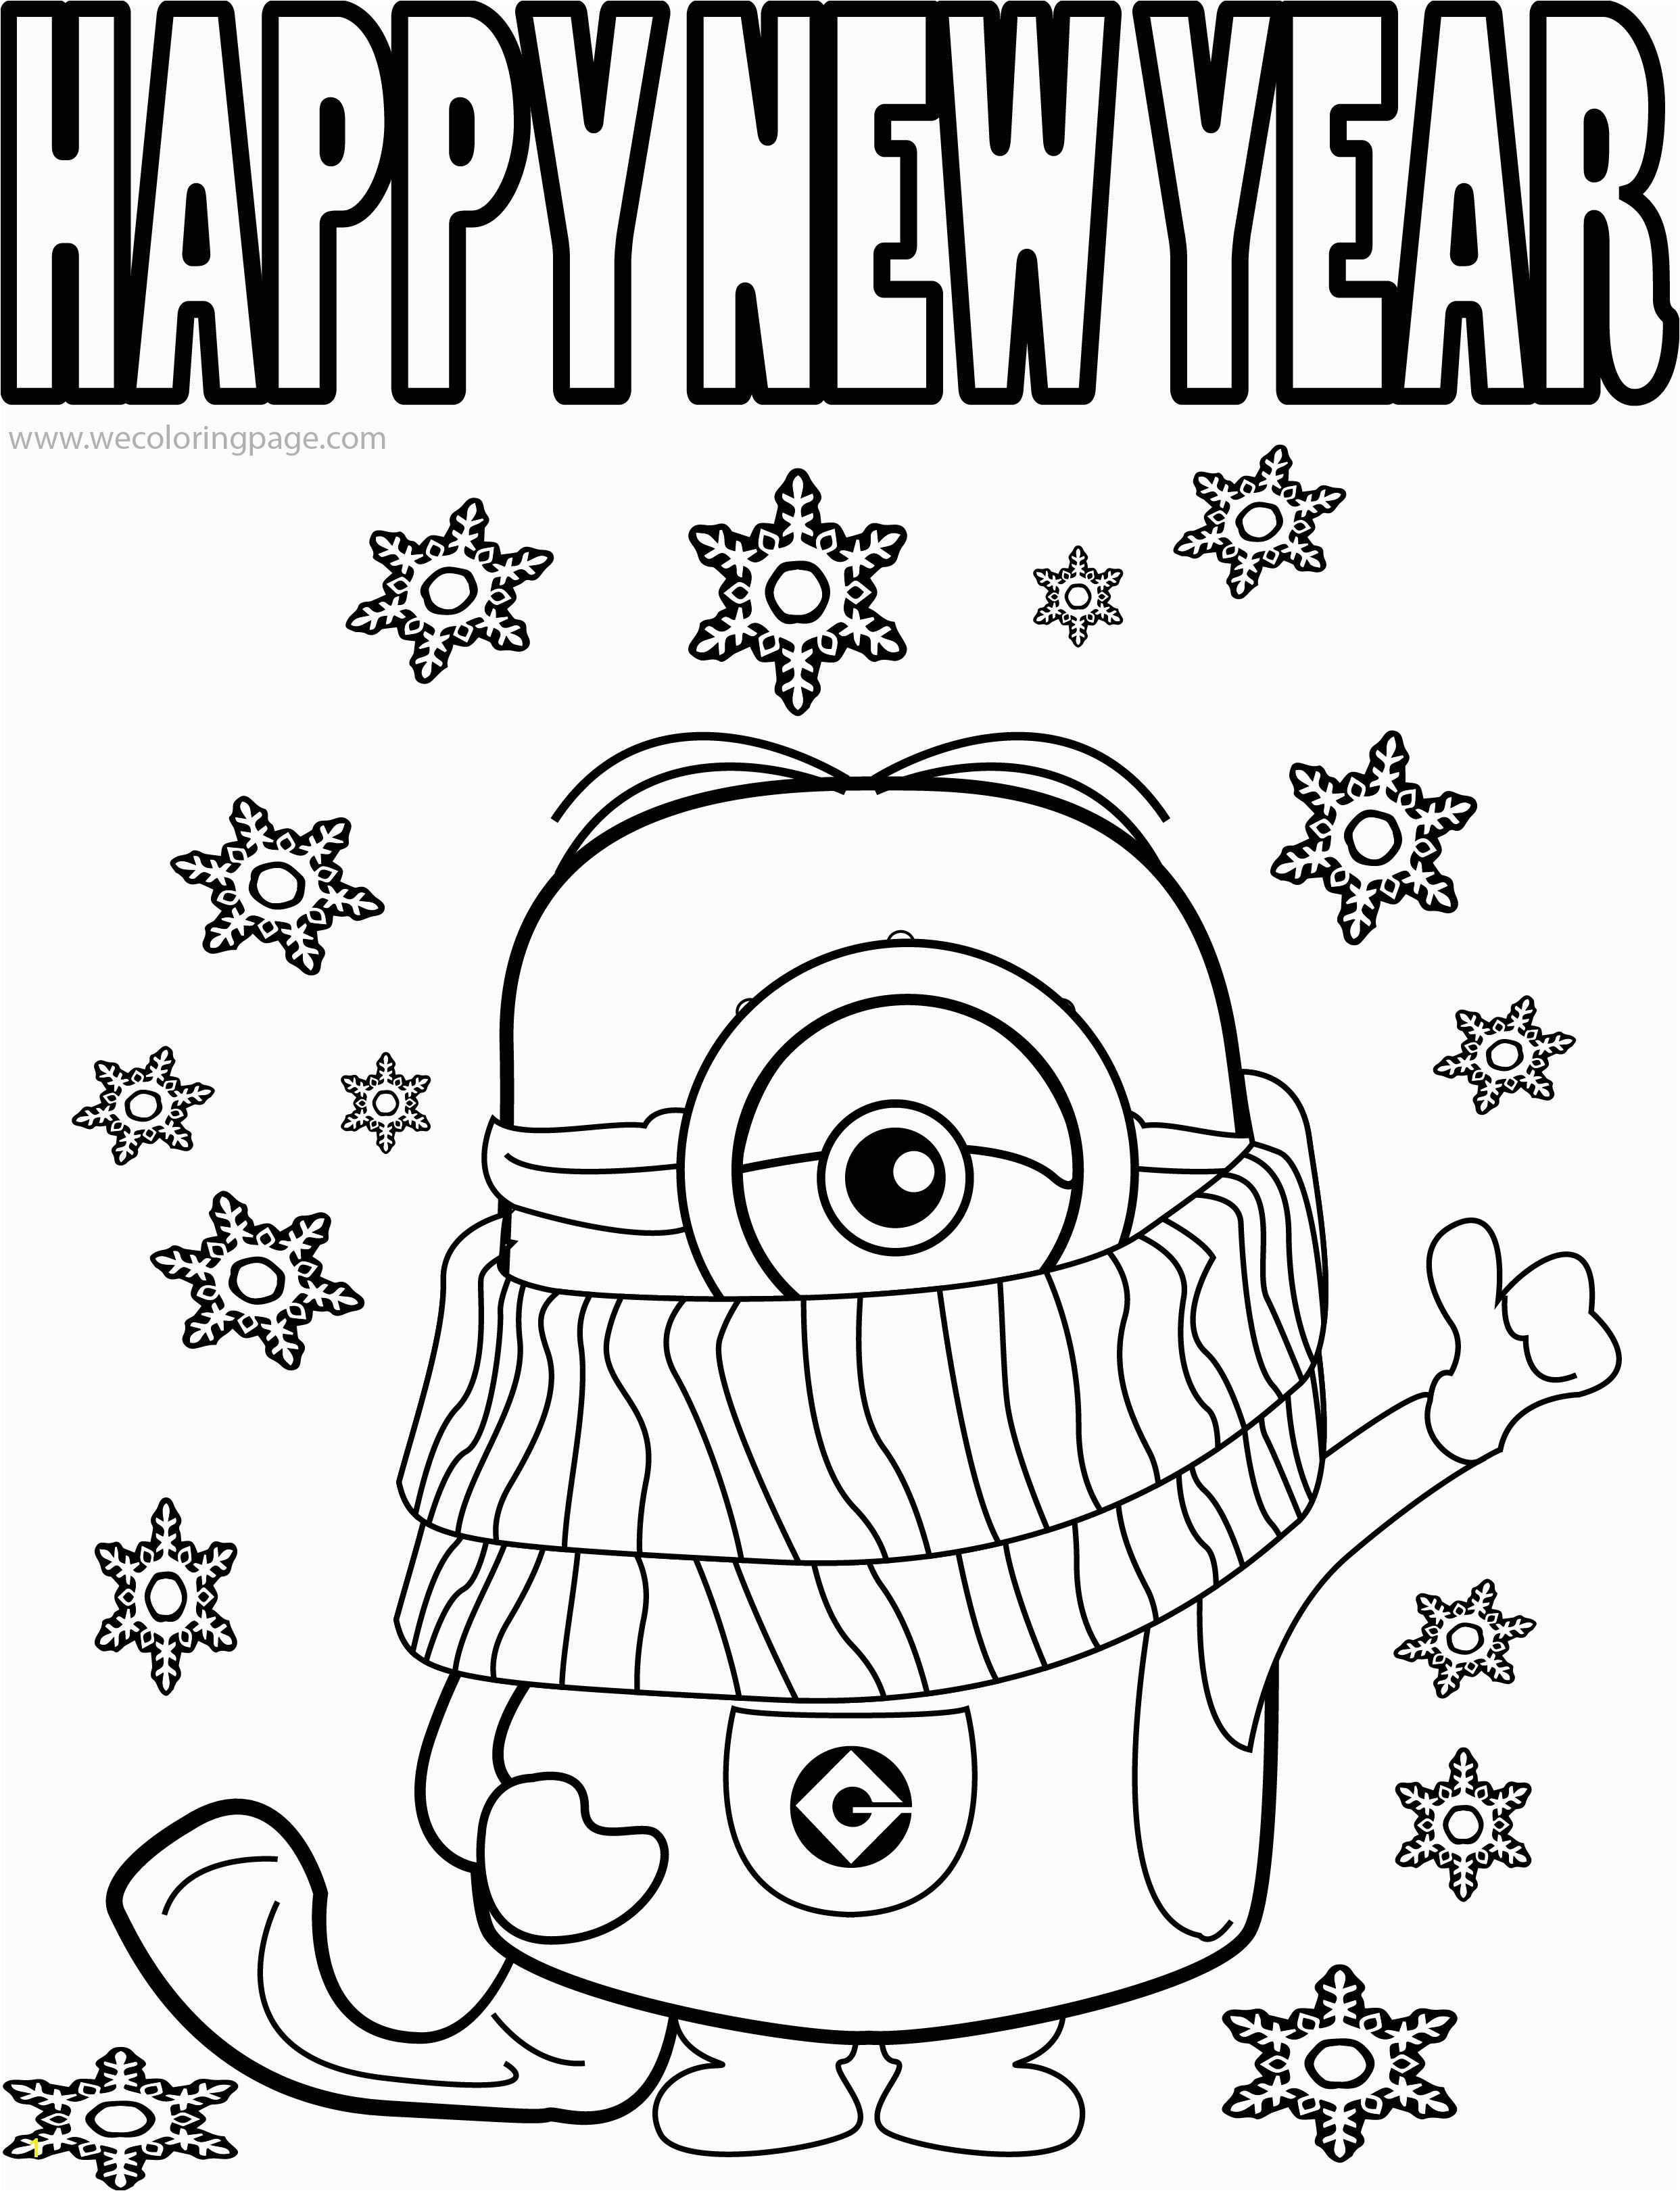 Refundable Happy New Year Coloring Pages To Print Amazing Sheets 2019 Pa